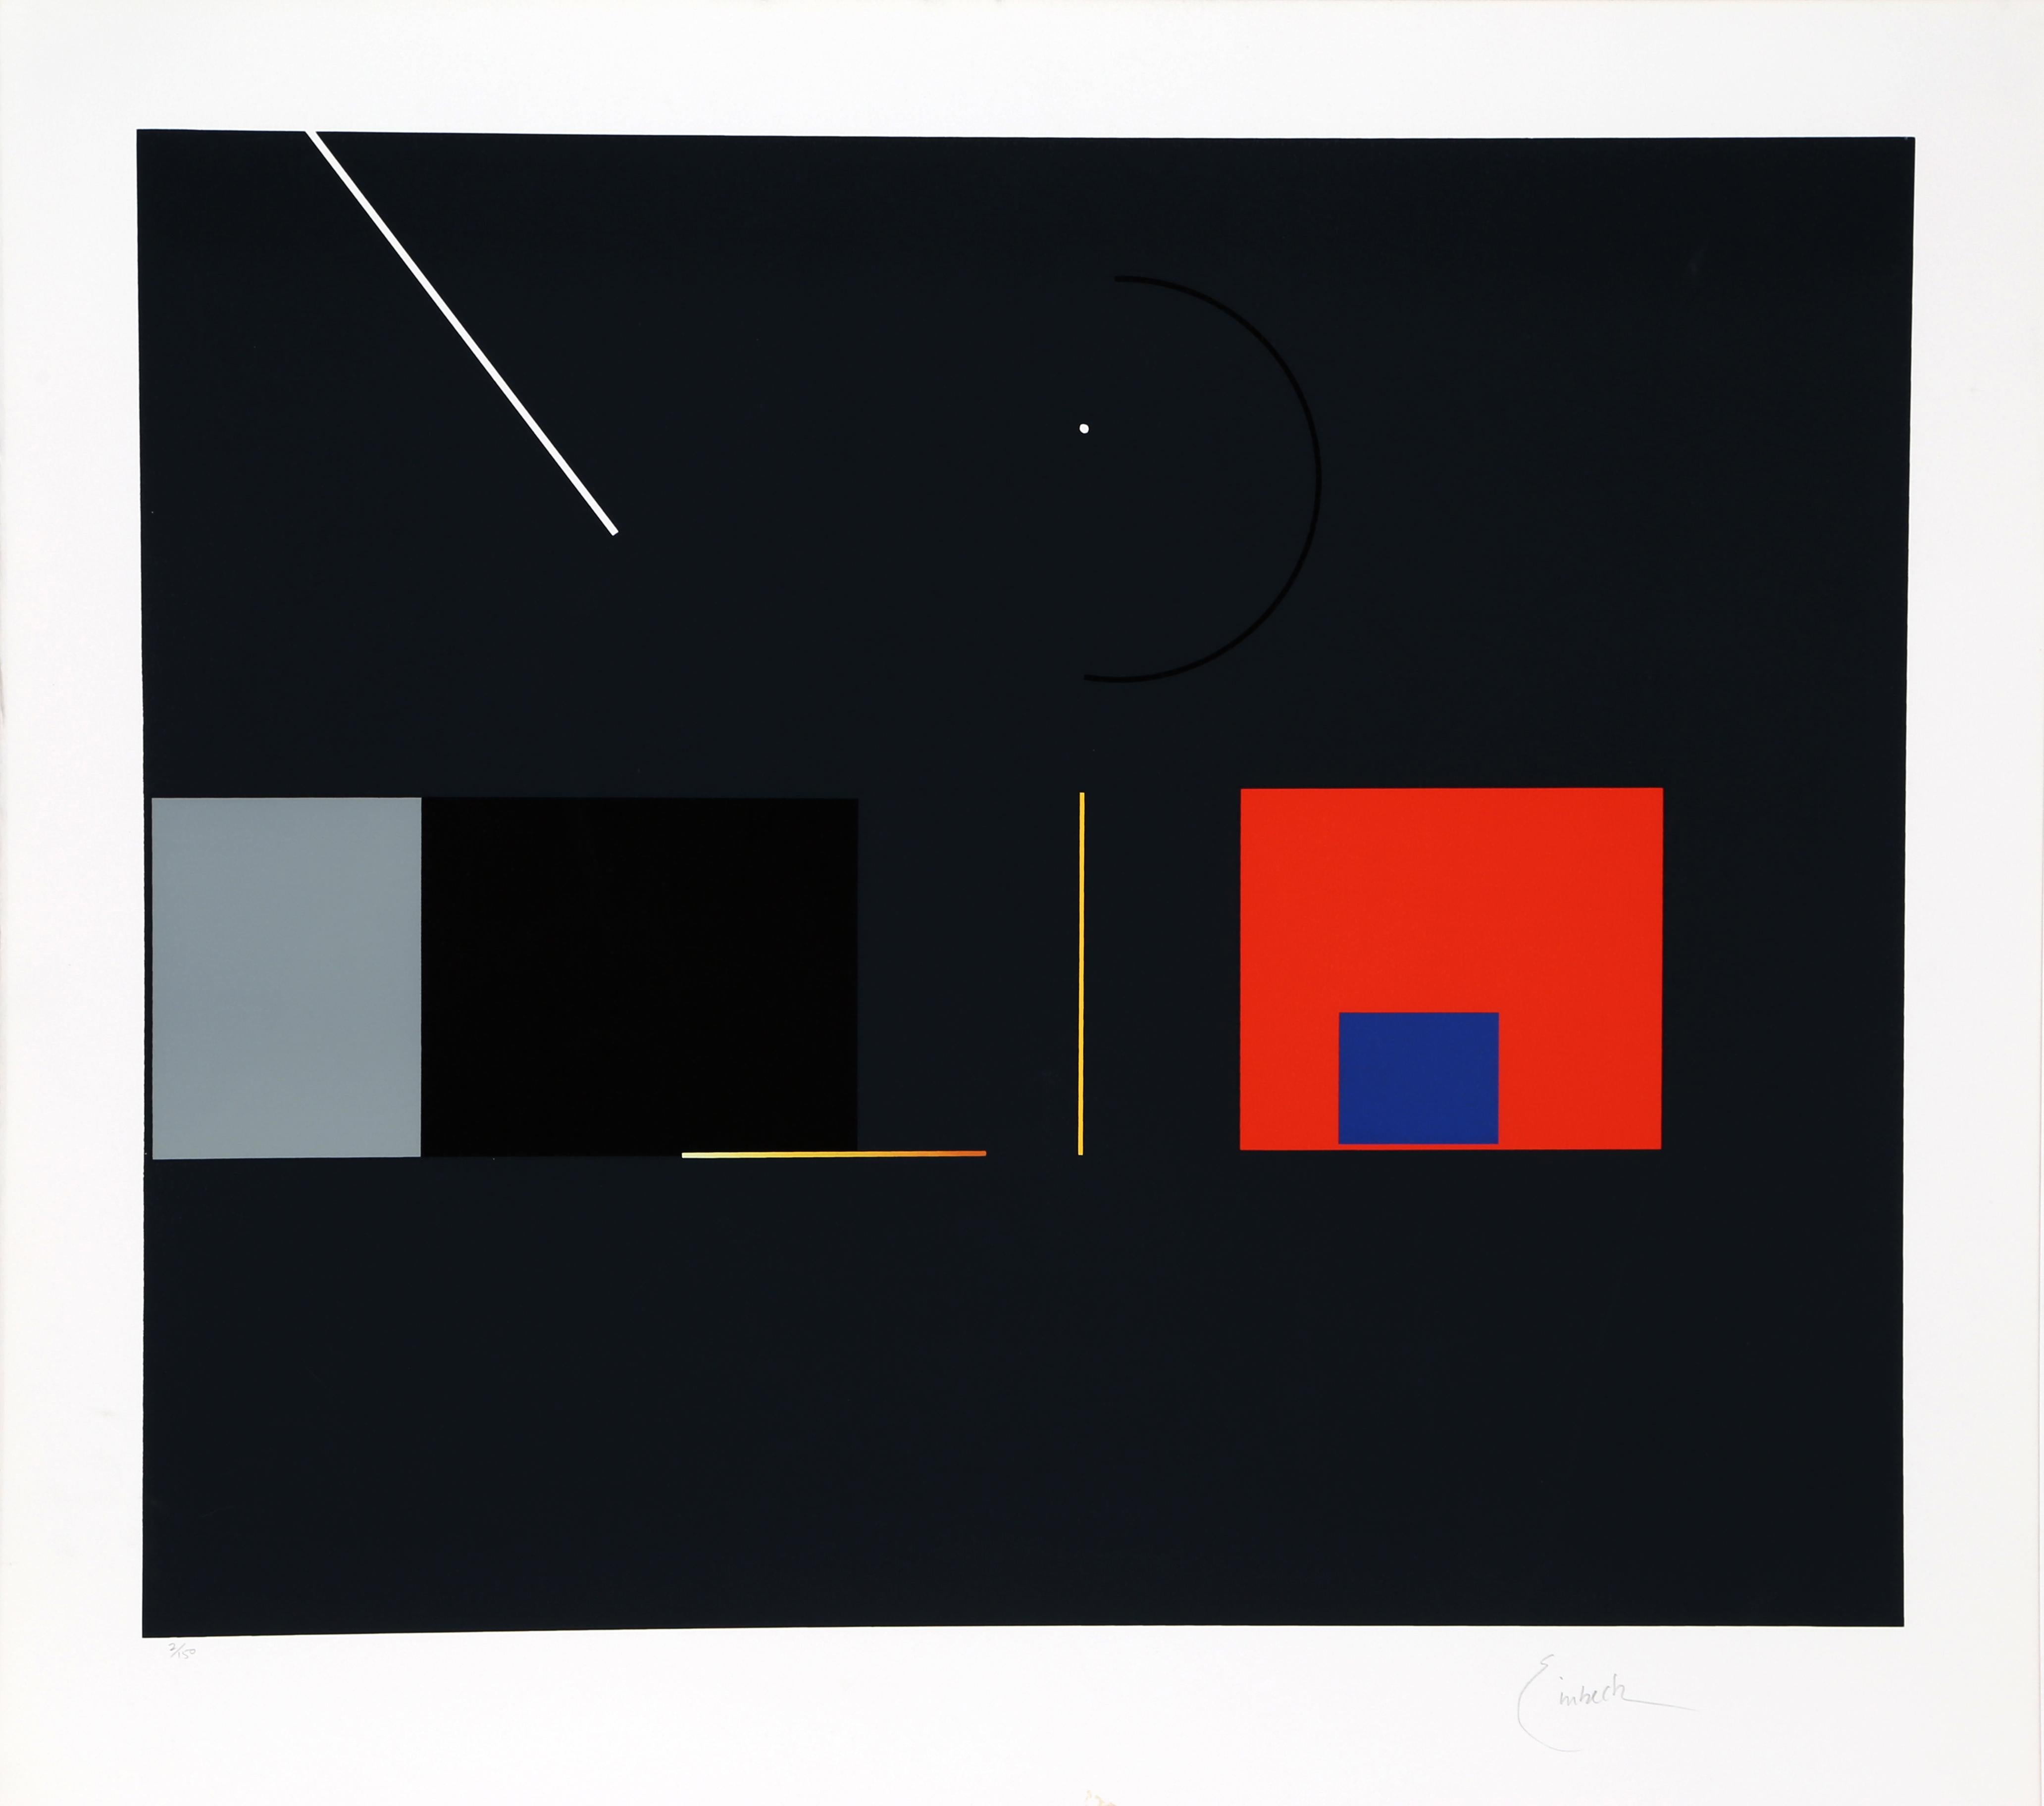 Abstract Serigraph I by Robert Einbeck